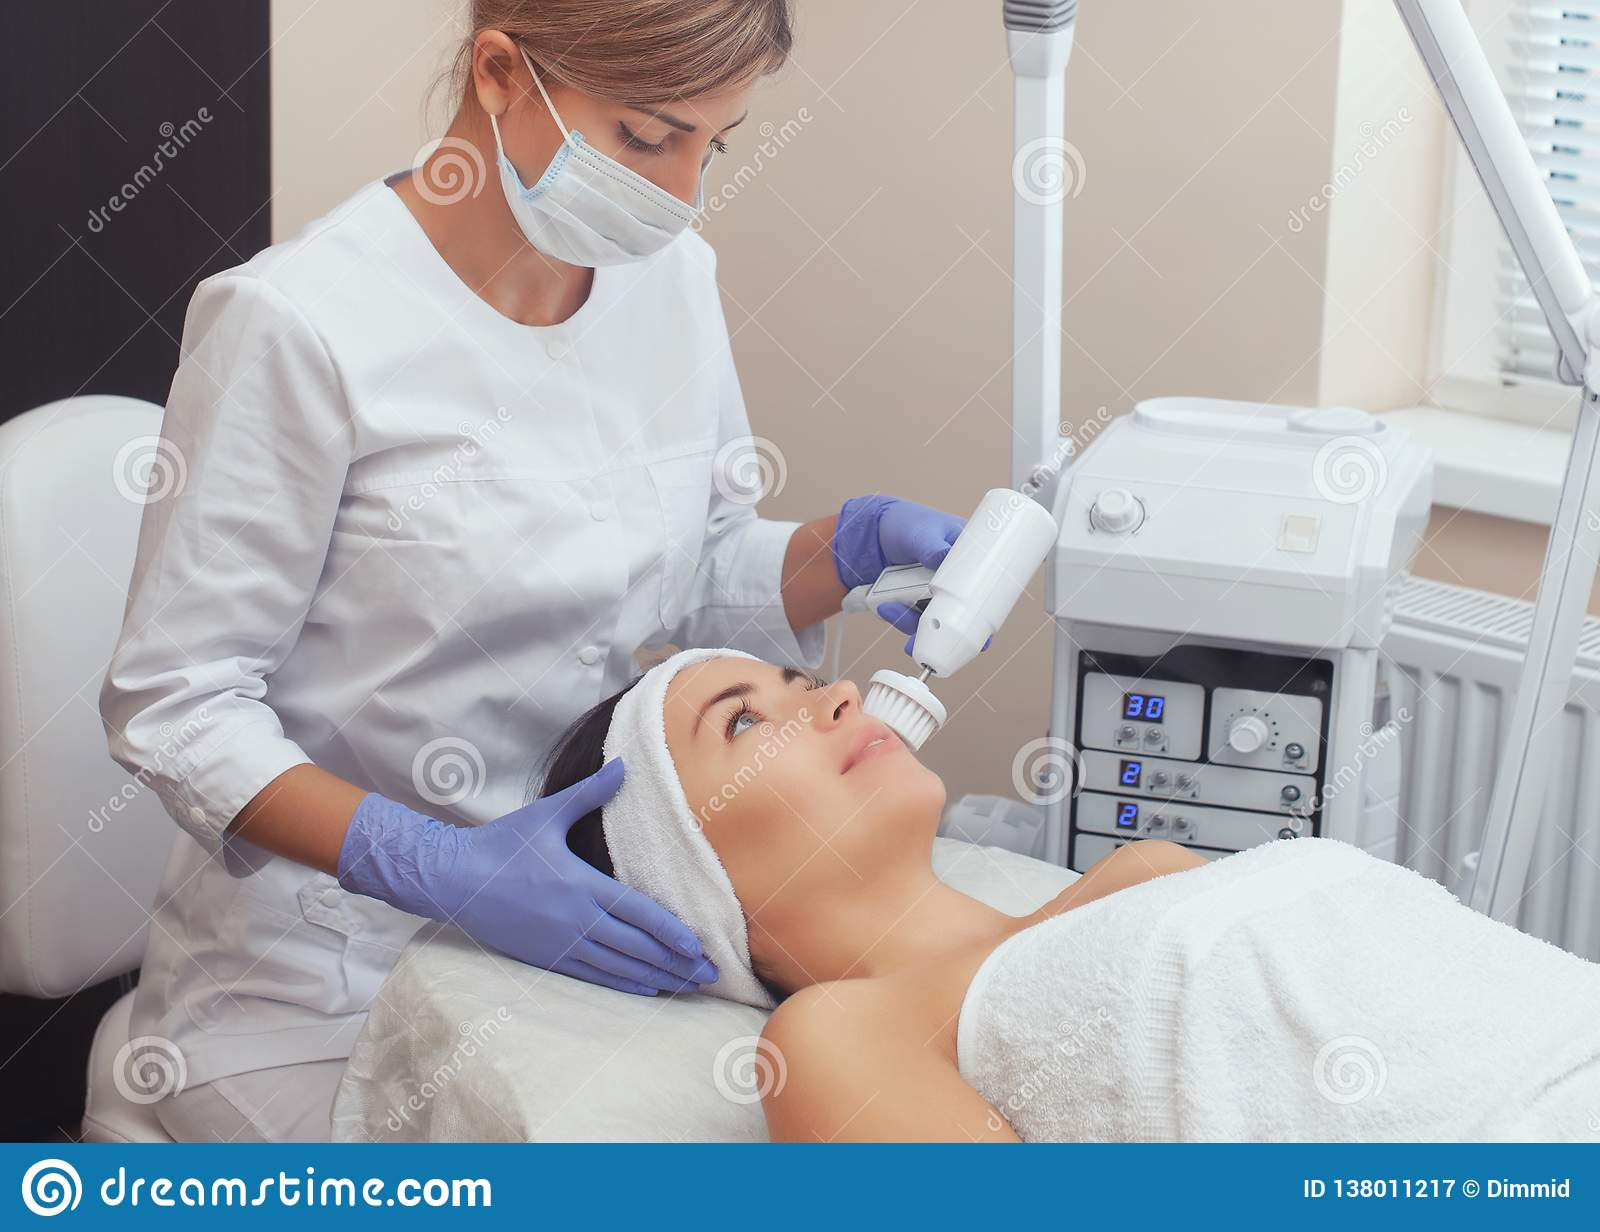 The cosmetologist makes the Hardware face cleaning procedure with a soft rotating brush of a beautiful, young woman in a beauty